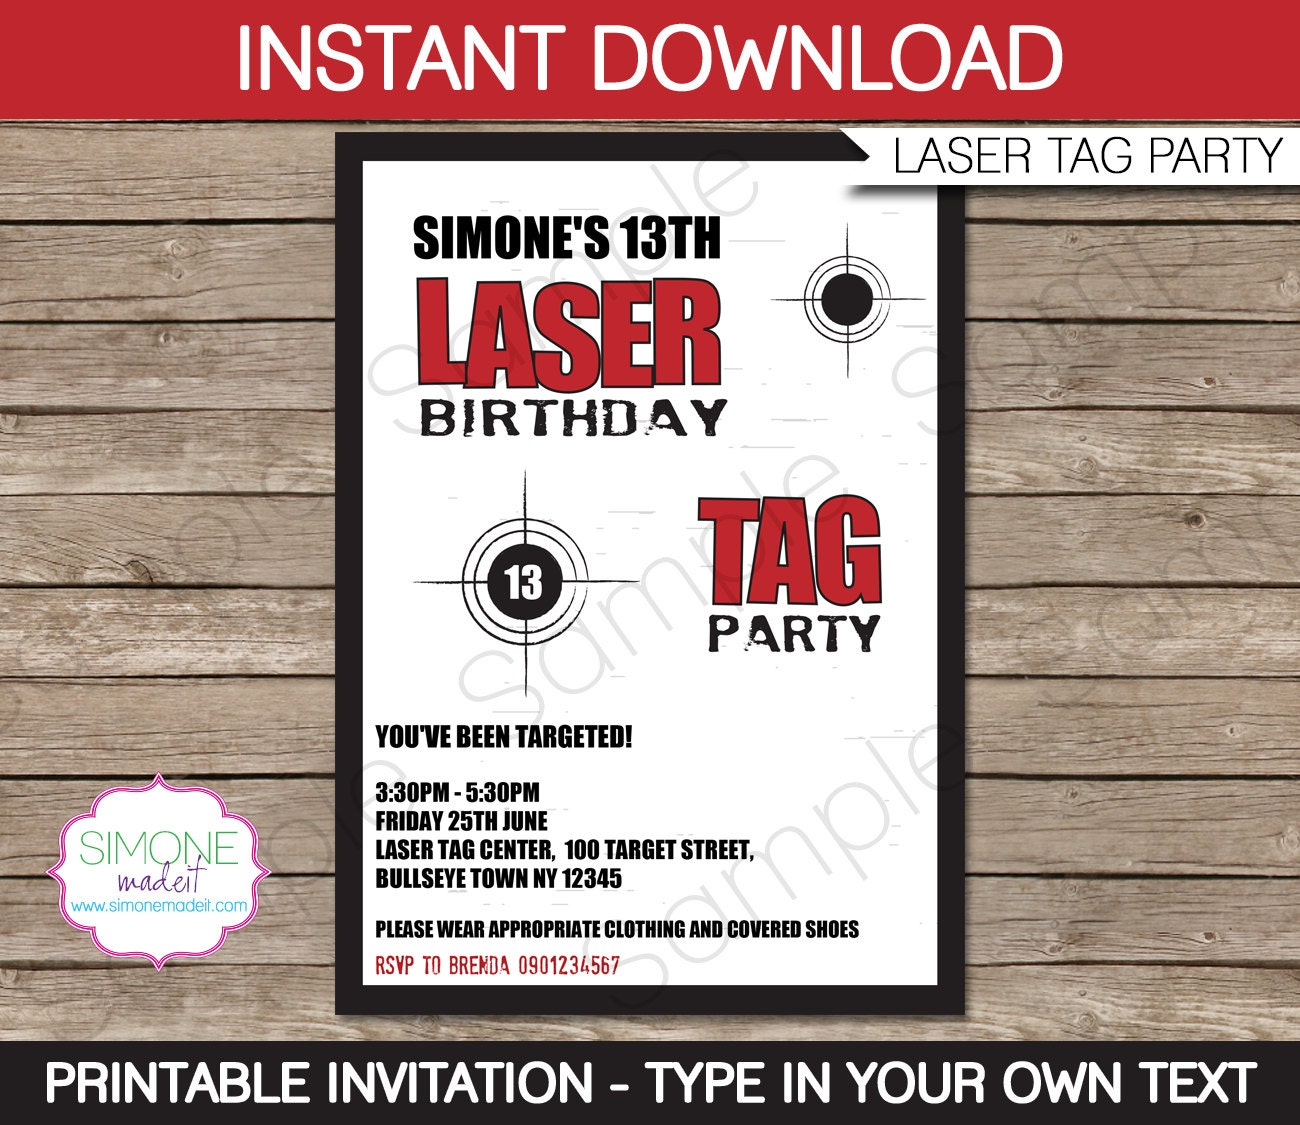 Laser Tag Invitation Template Birthday Party INSTANT